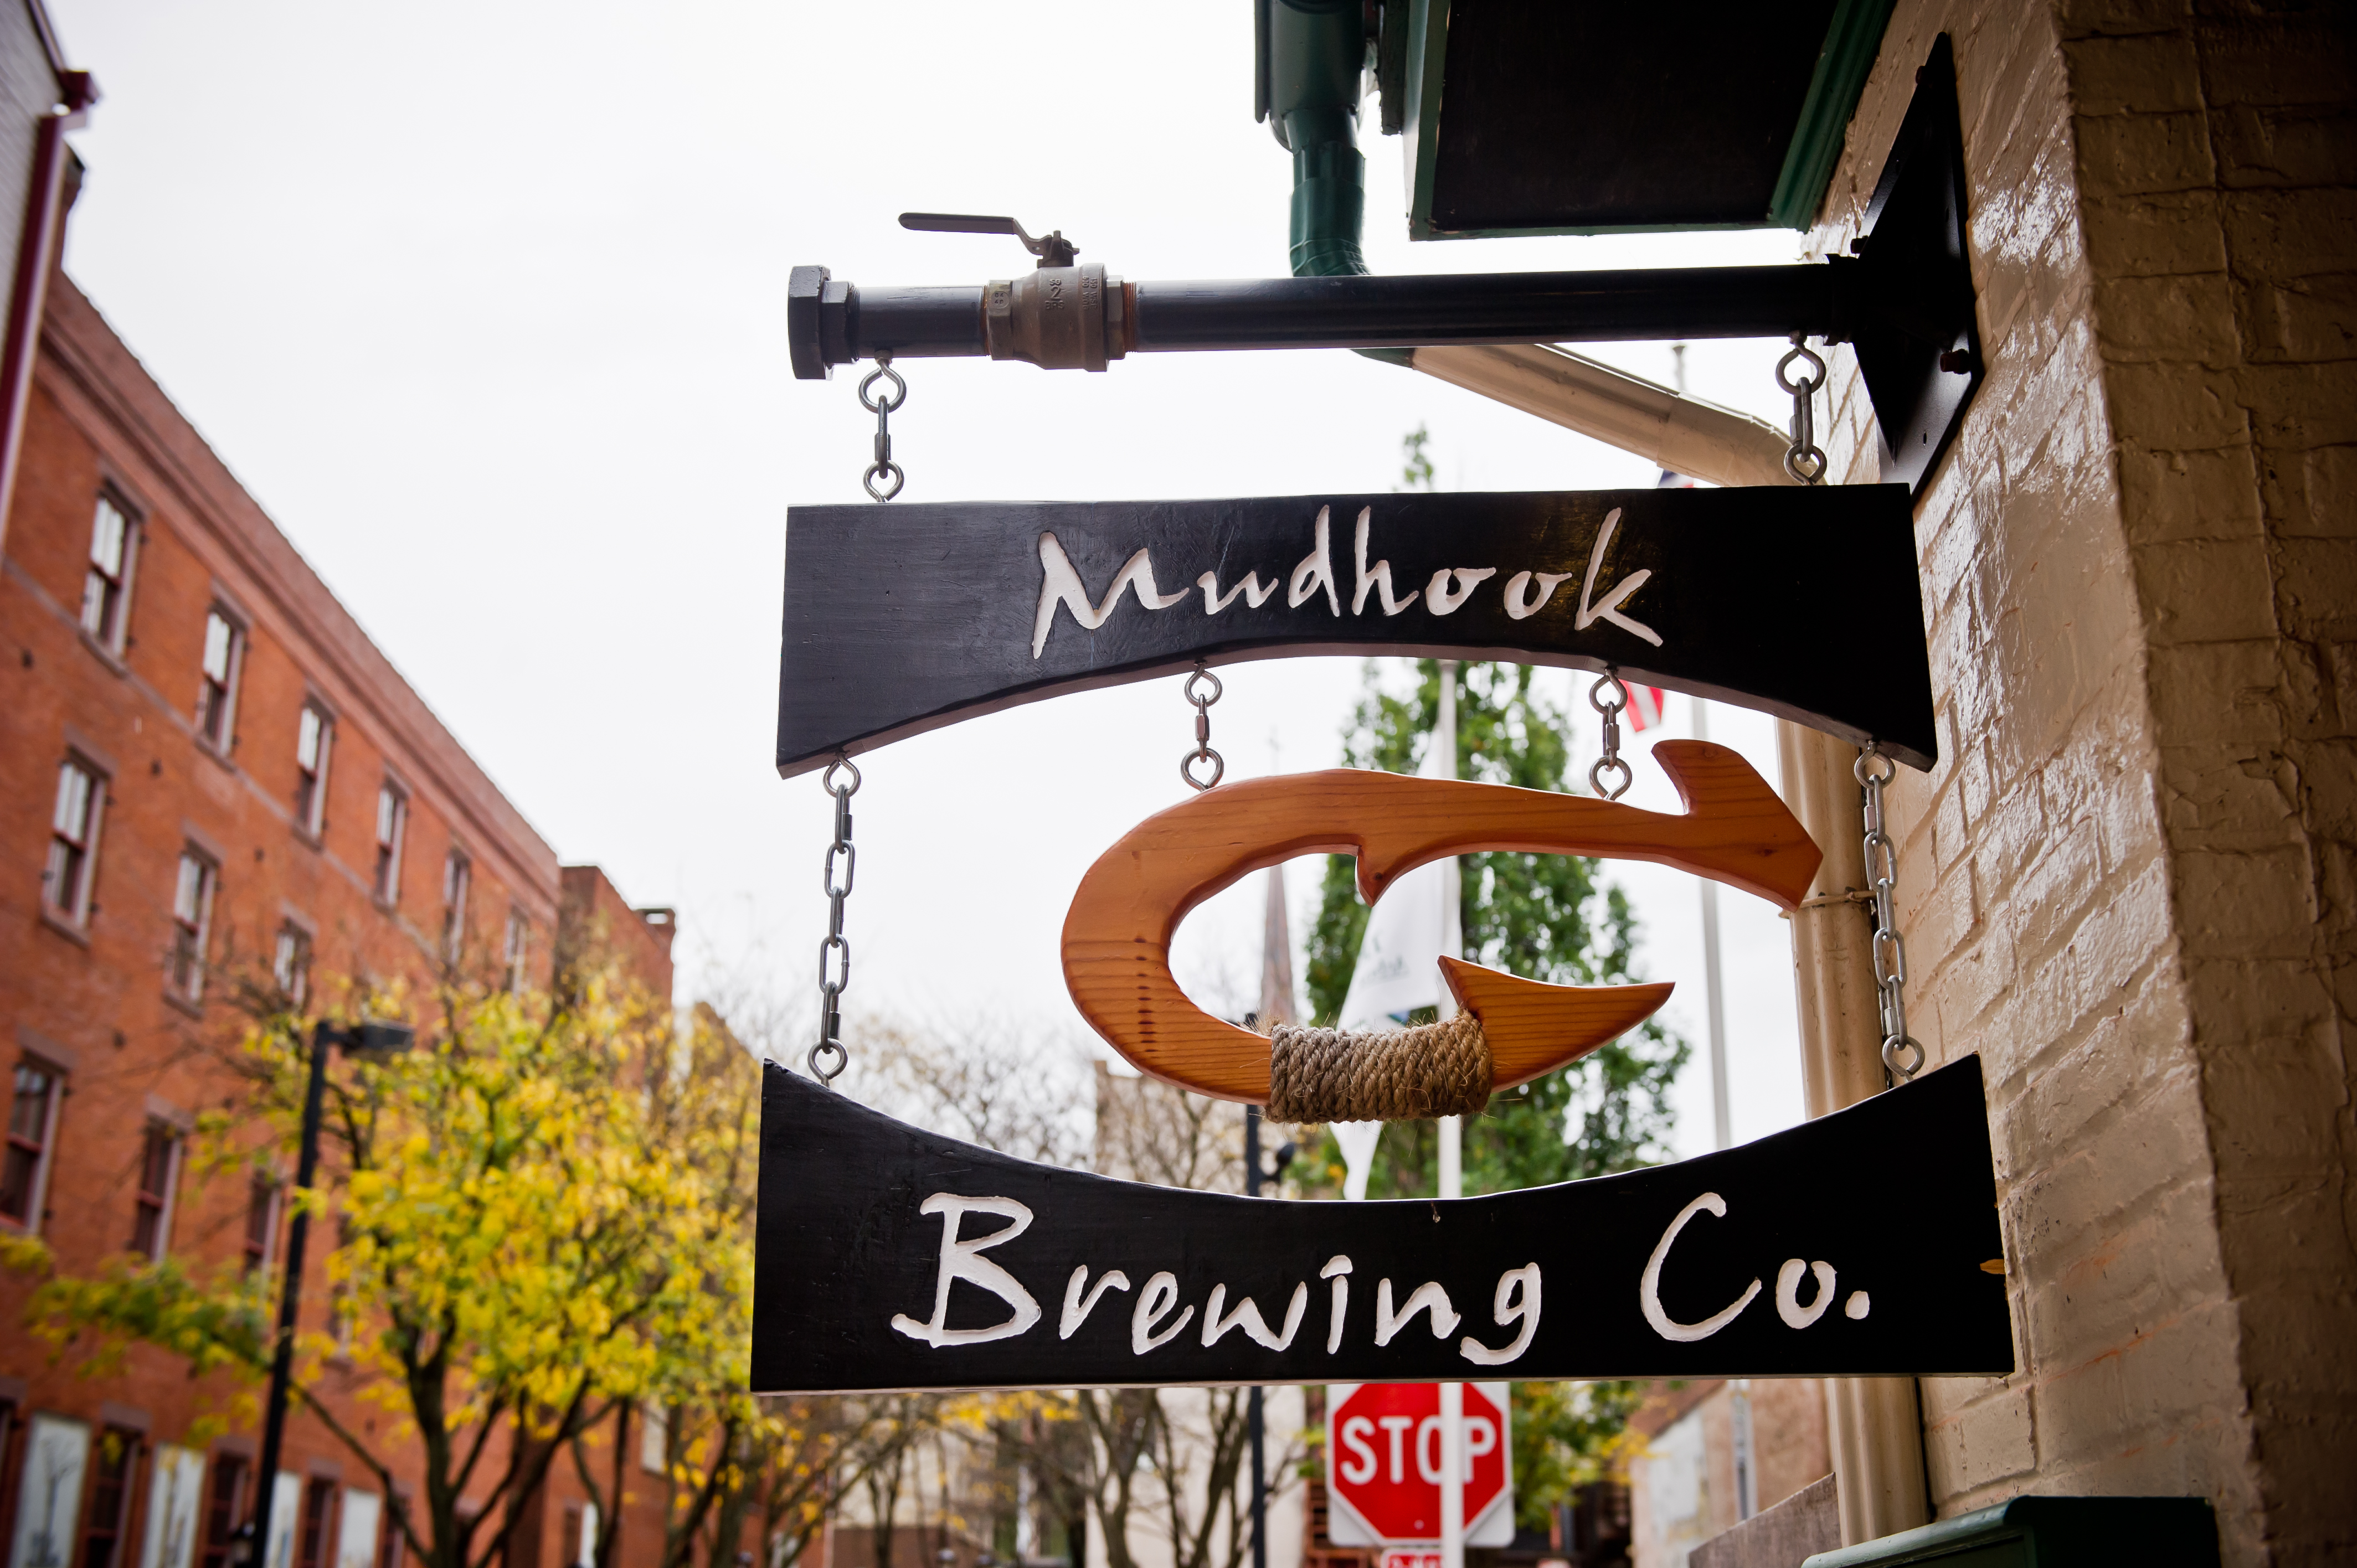 Mudhook Brewing Company sits on the corner of the old Clark Alley. You might spot The Imp here after having a few pints.